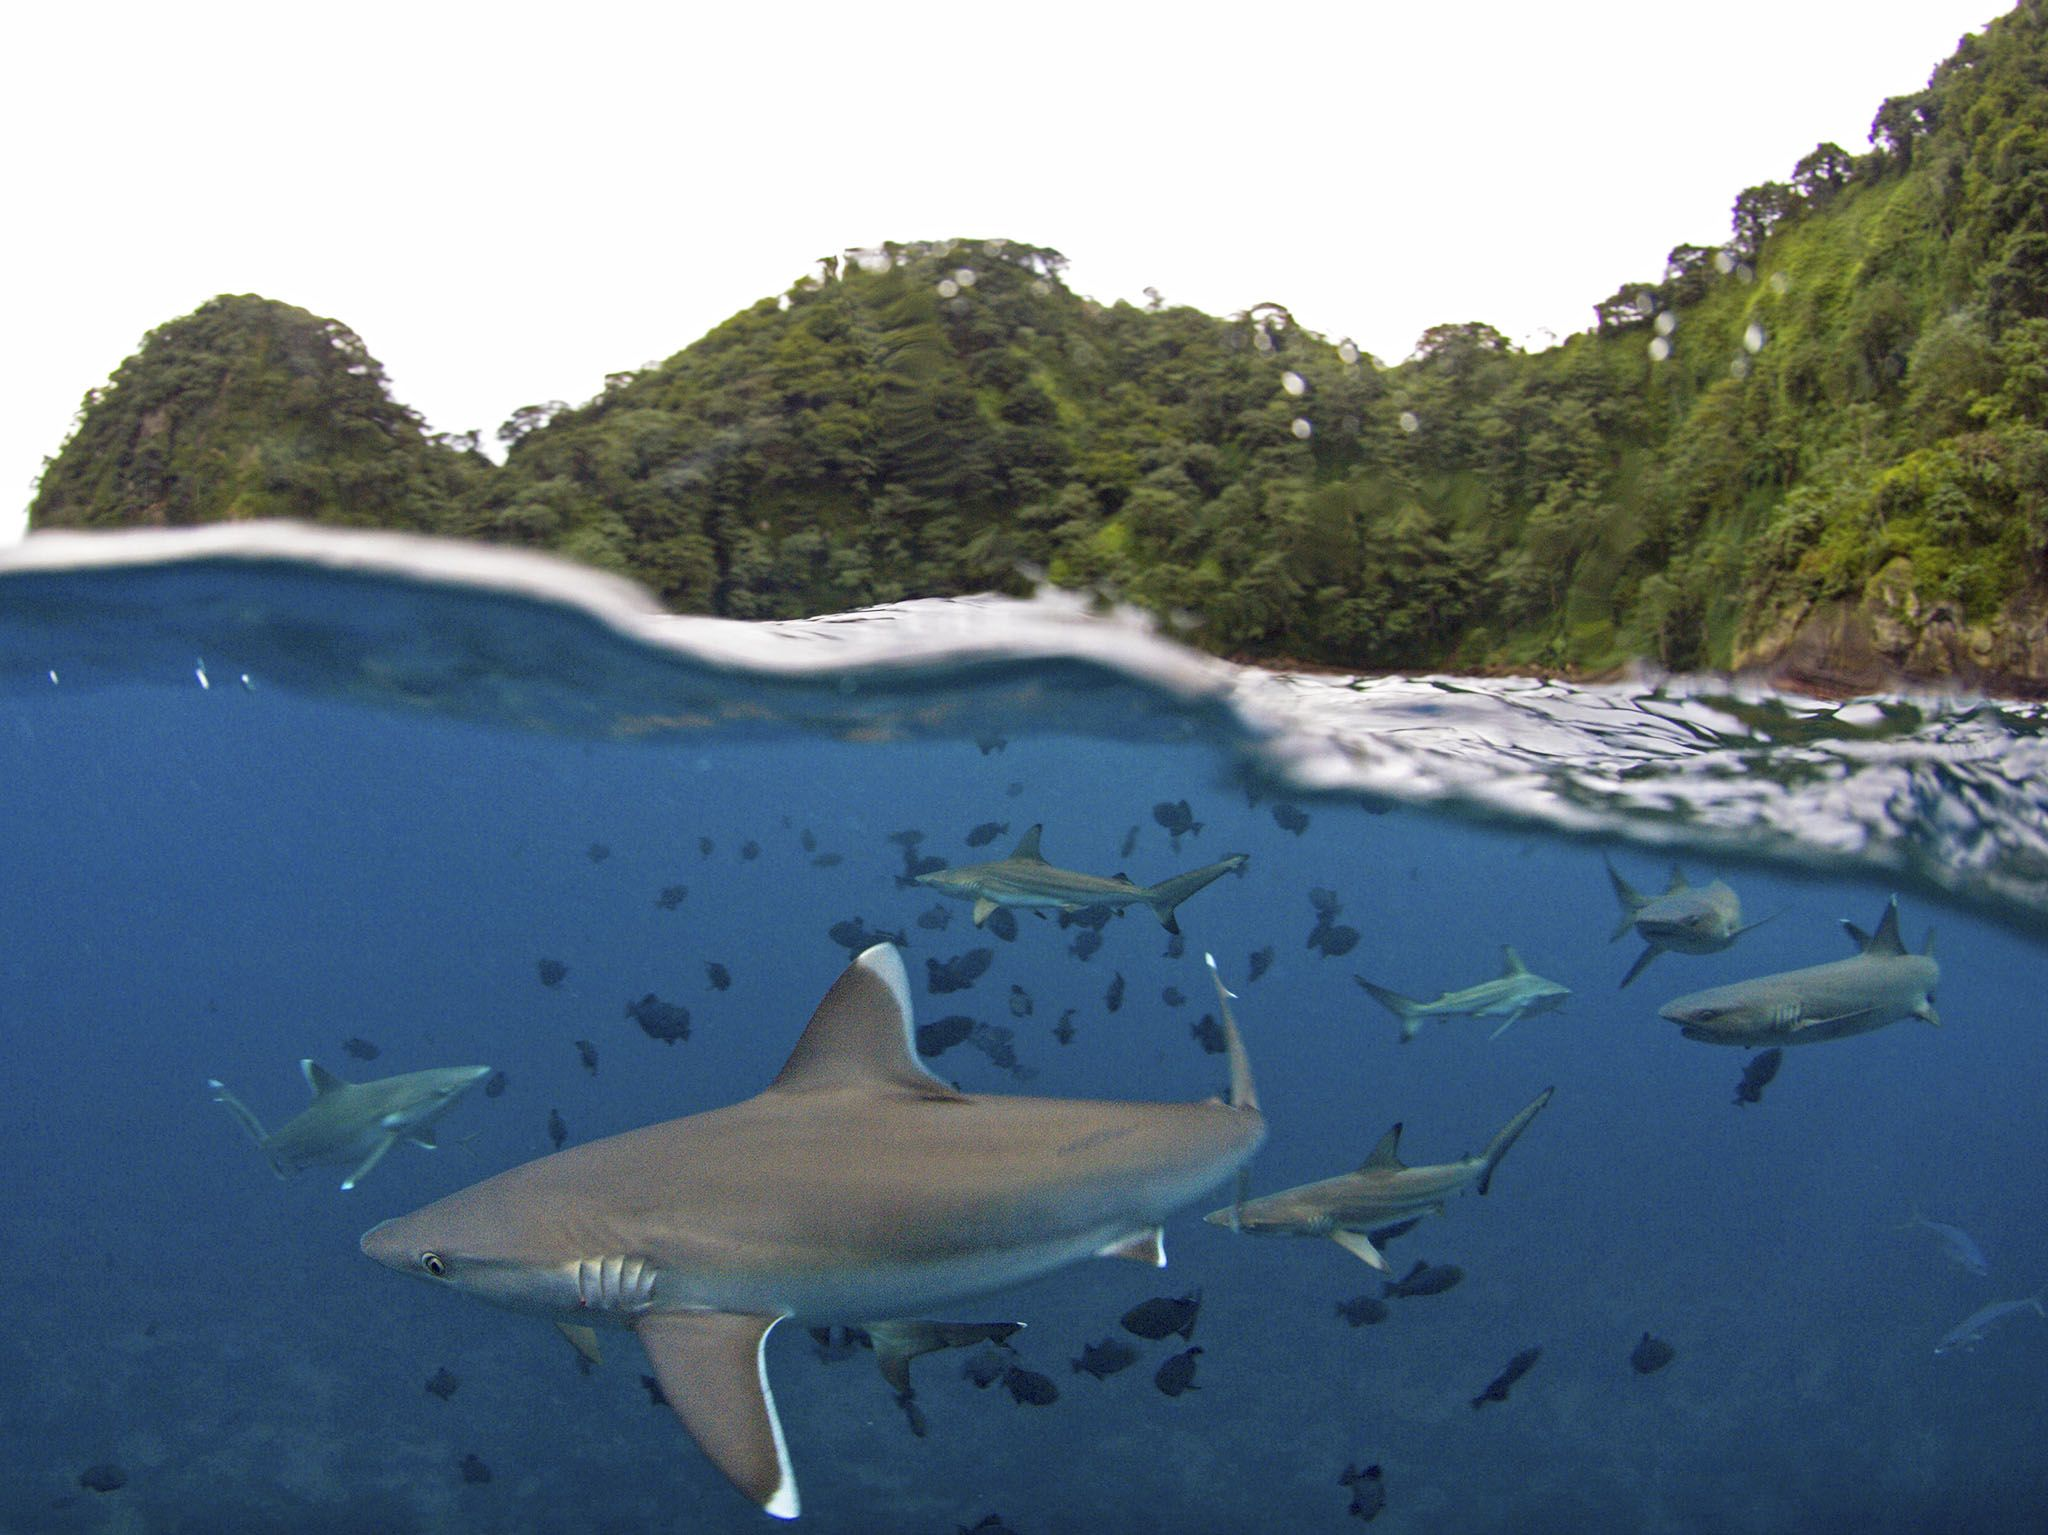 UNESCO World Heritage, Cocos Island, Costa Rica: Below the waterline, sharks fill the ocean... [Photo of the day - July 2017]